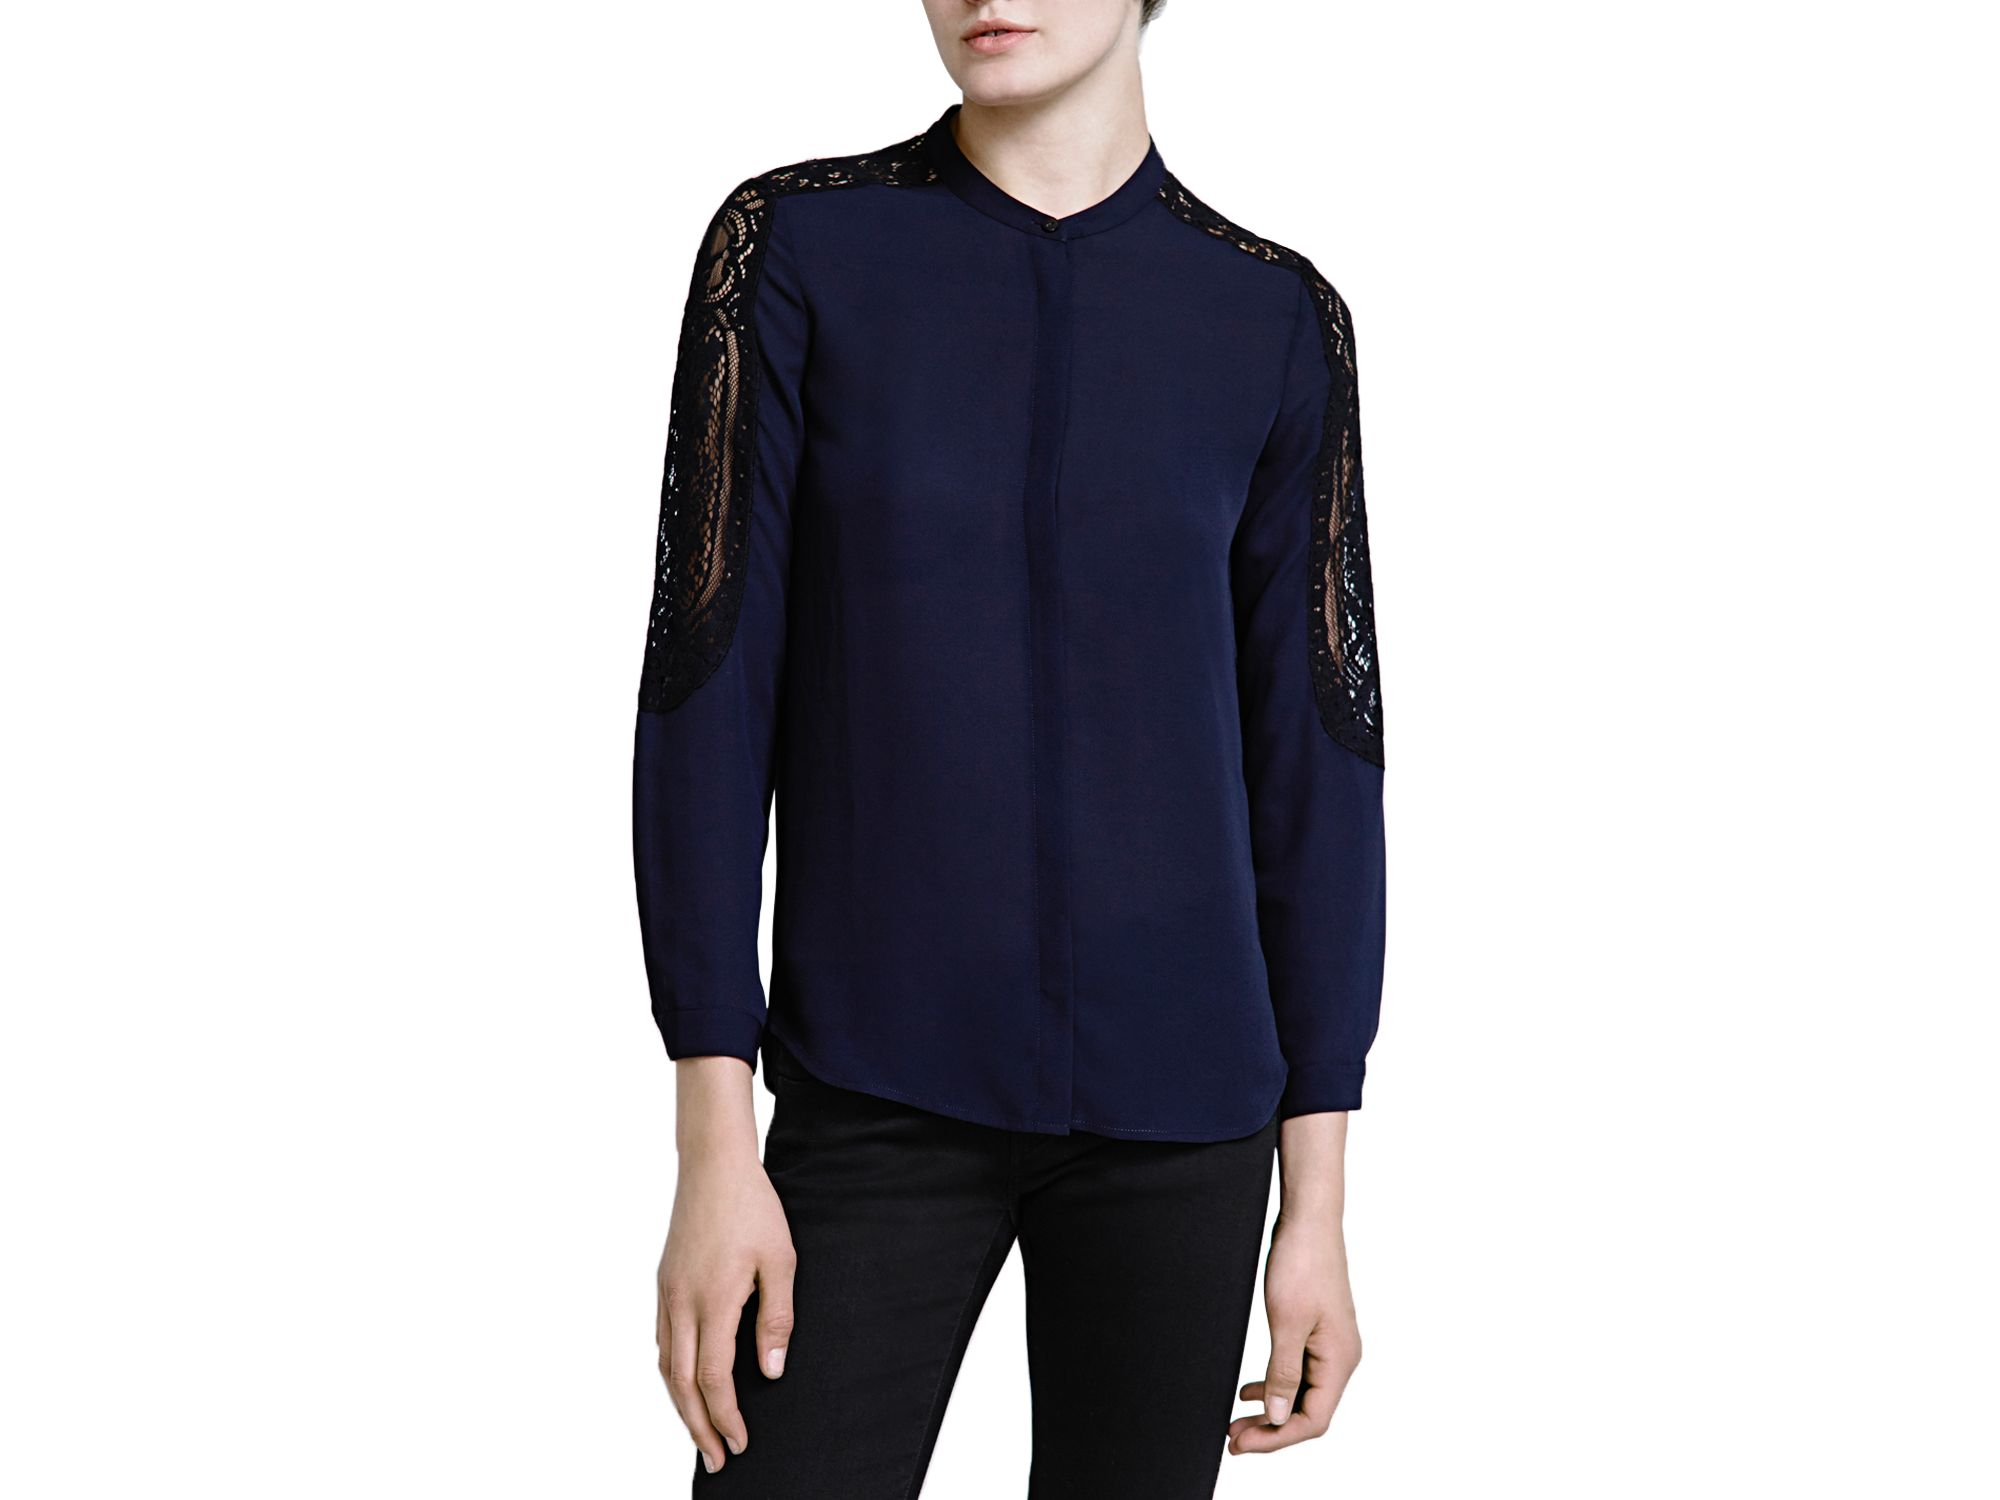 70dac156cd The Kooples Crepe & Lace Shirt in Blue - Lyst